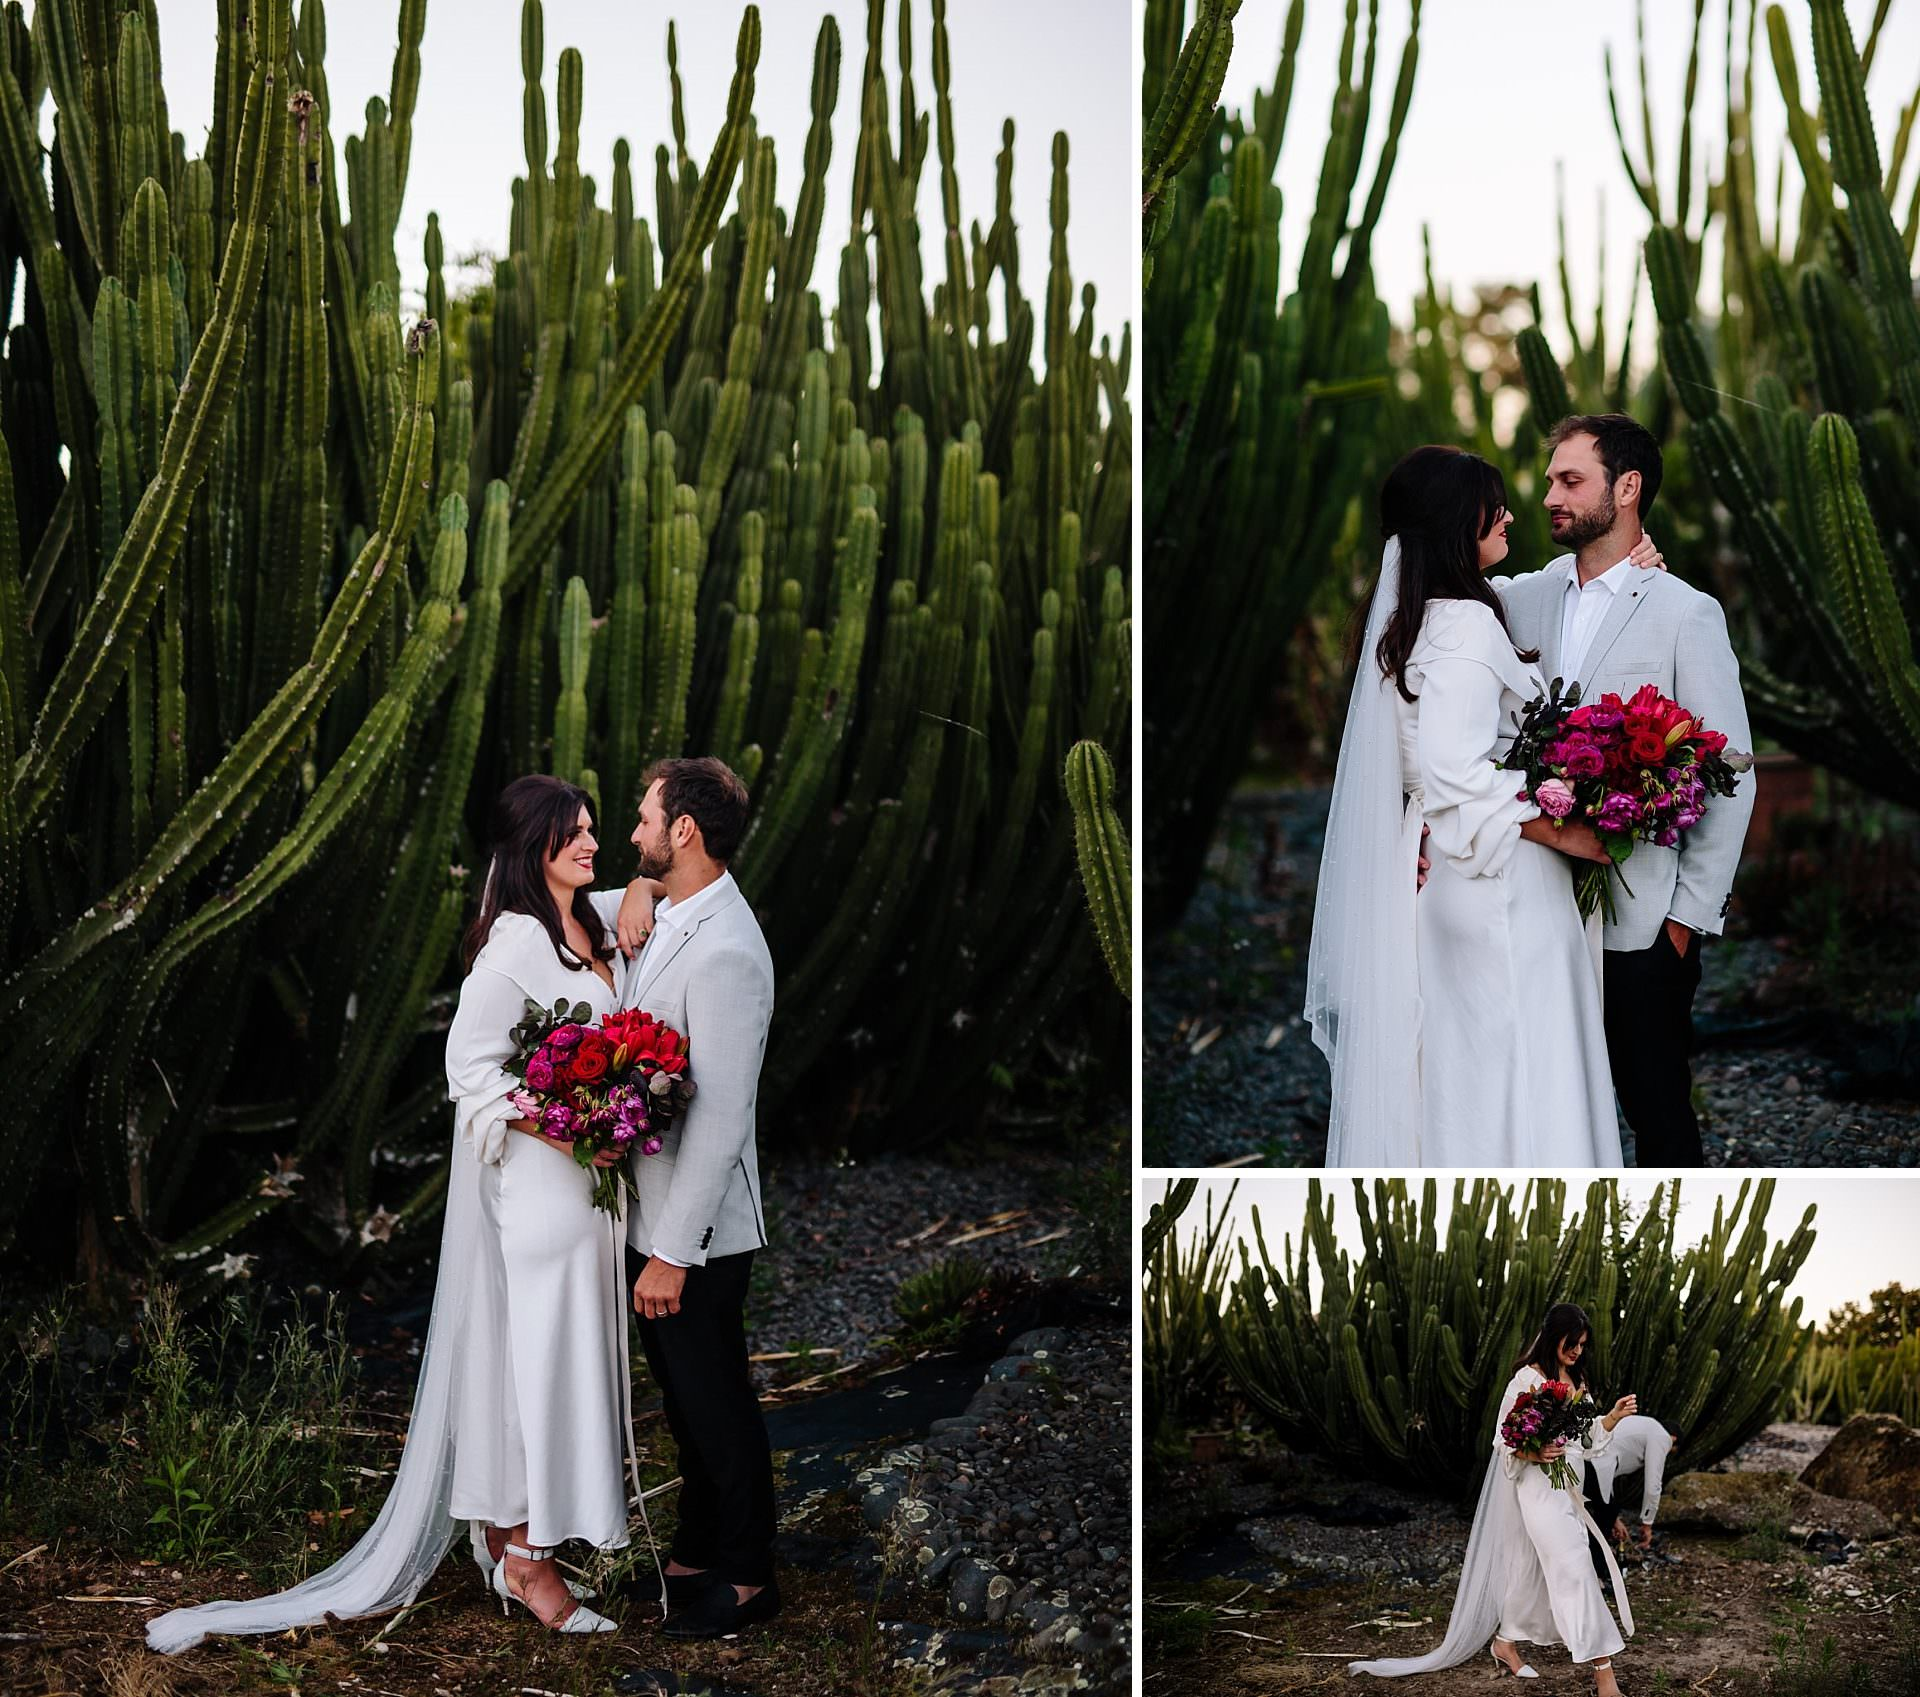 Hamilton Cactus Garden wedding photo of bride and groom at sunset